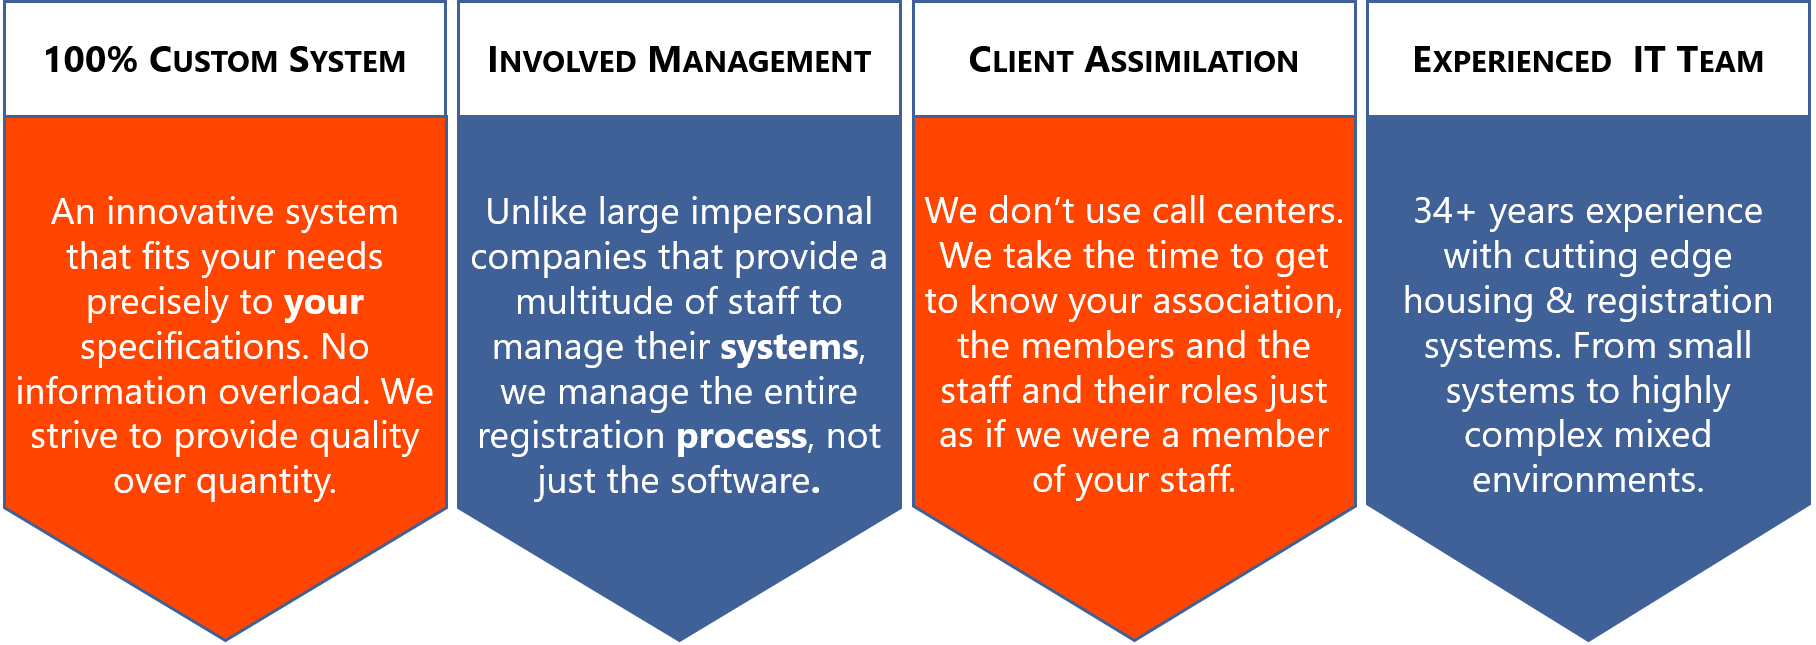 100% Custom System, Involved Management, Client Assimilation, Experienced IT Team